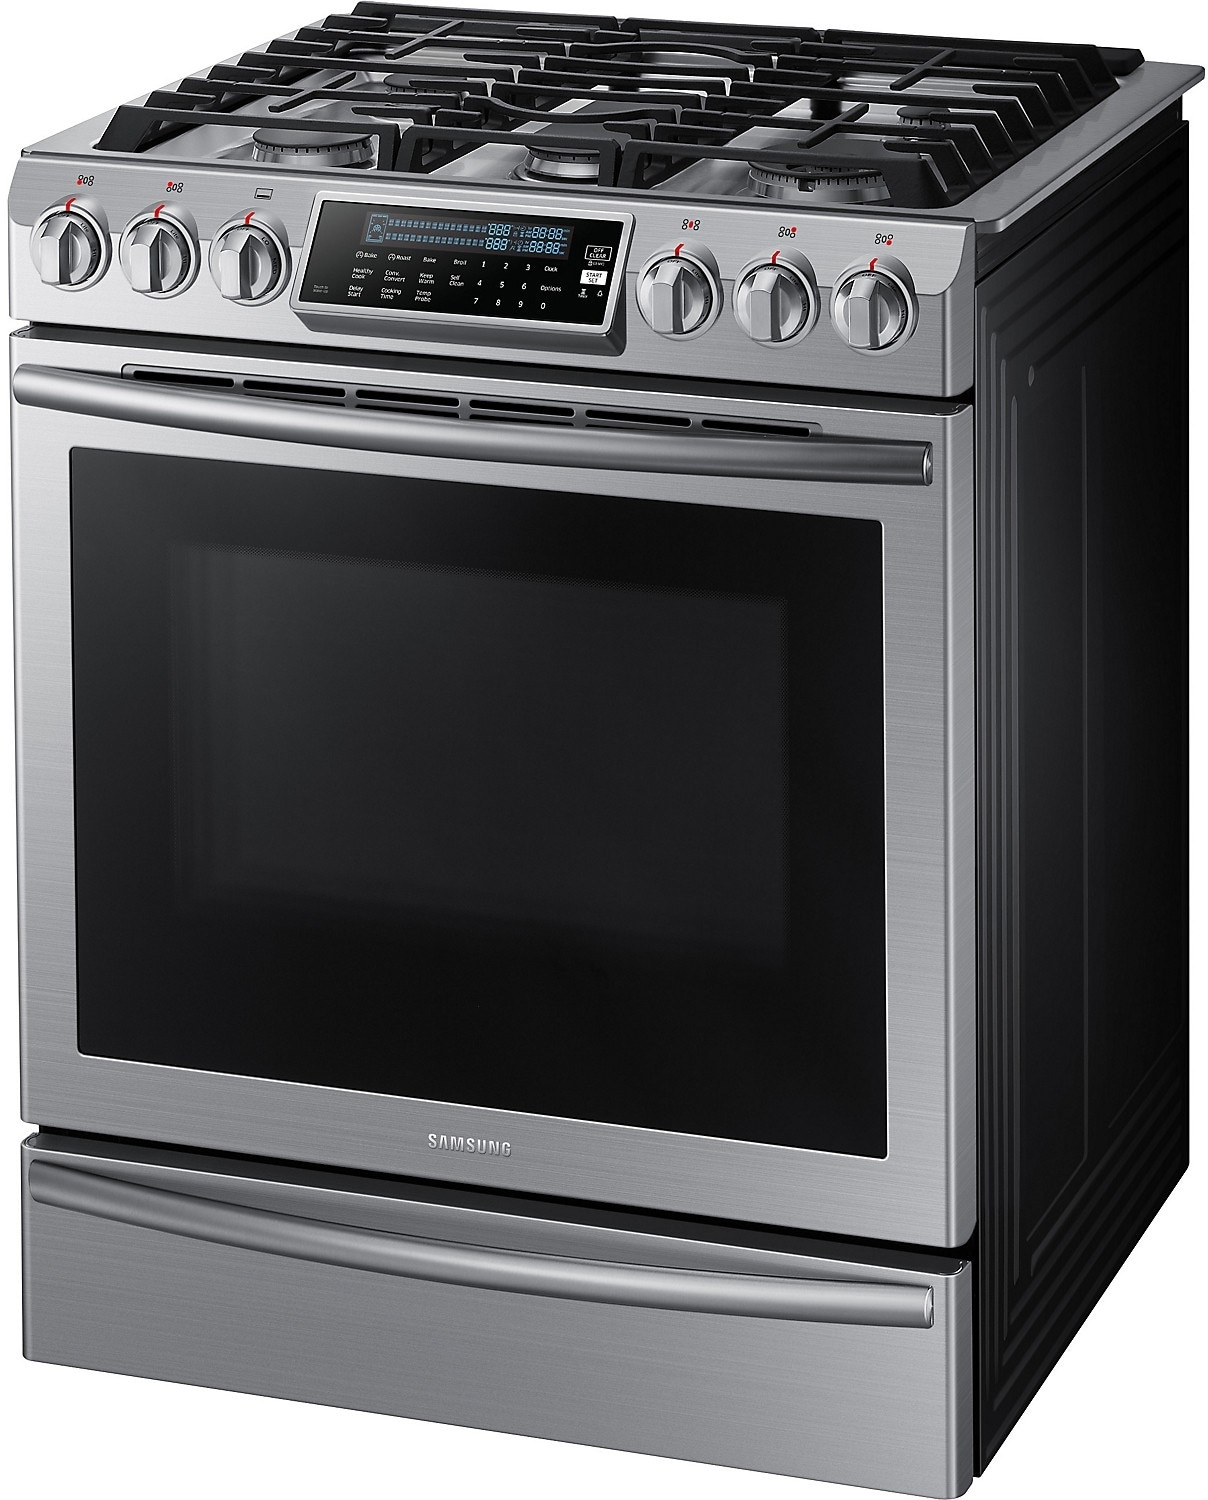 ft convection slidein gas range u2013 stainless steel the brick